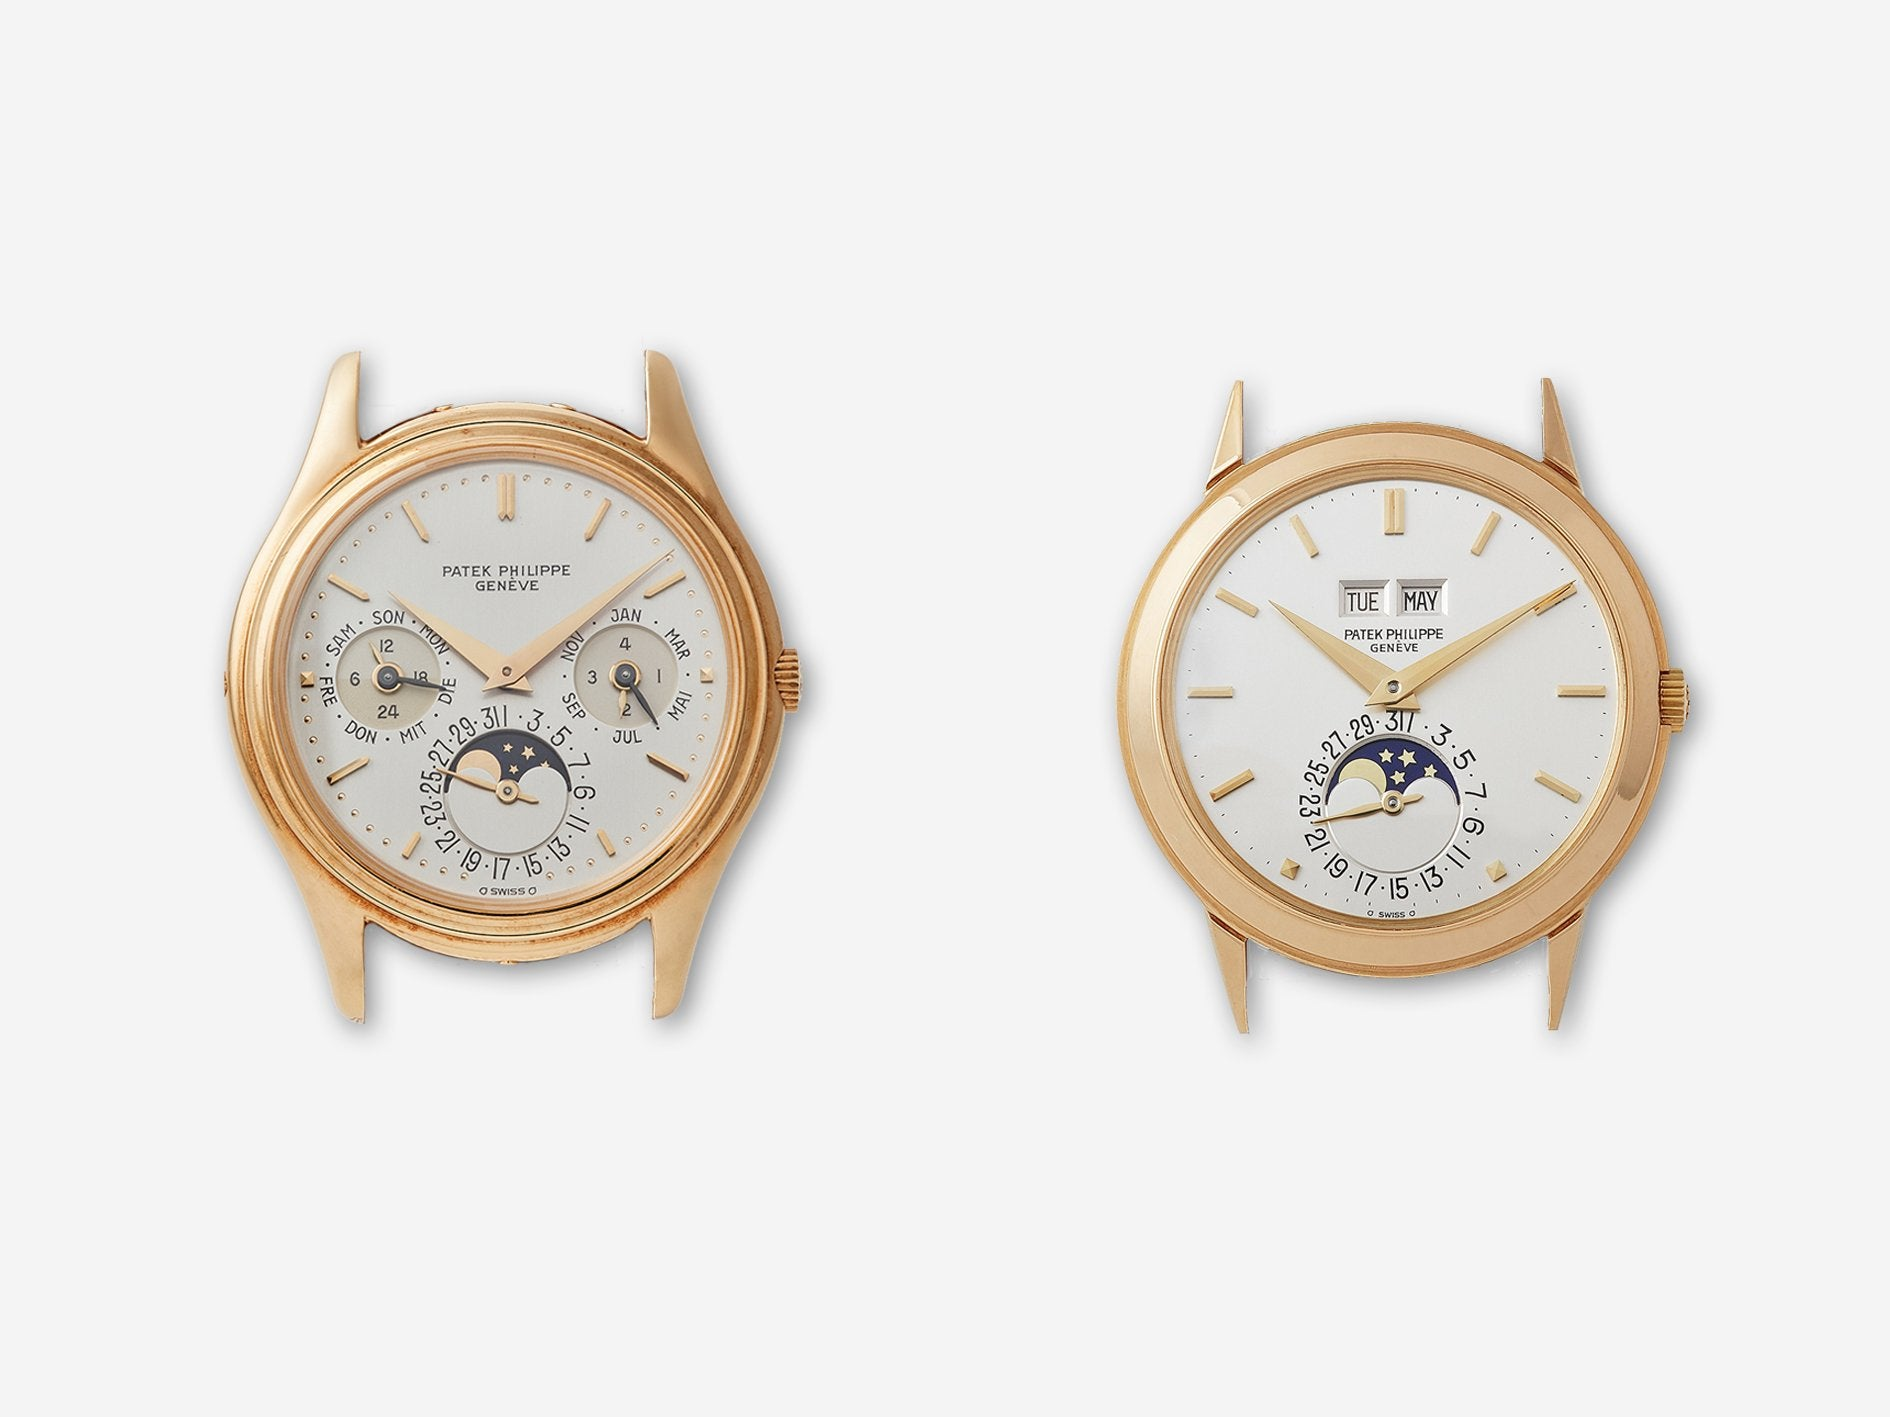 Patek Philippe 3448 and 3940 in The Rise of Neo-Vintage Watches for A Collected Man London